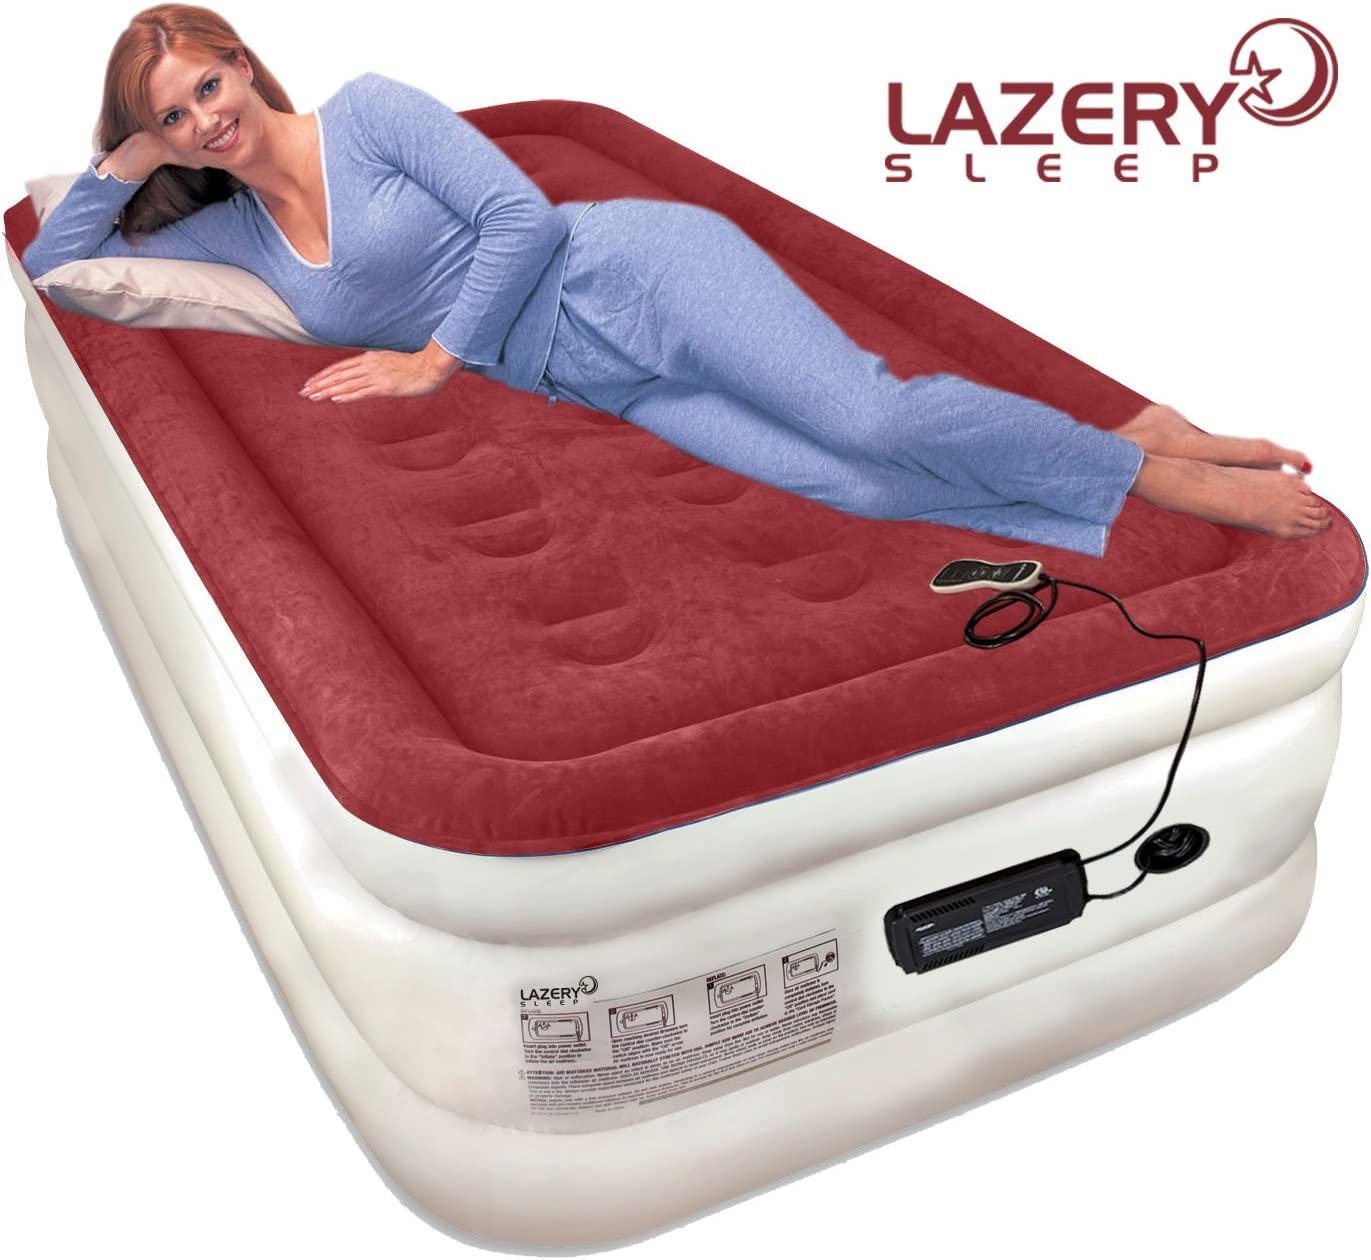 Lazery Sleep Airbed